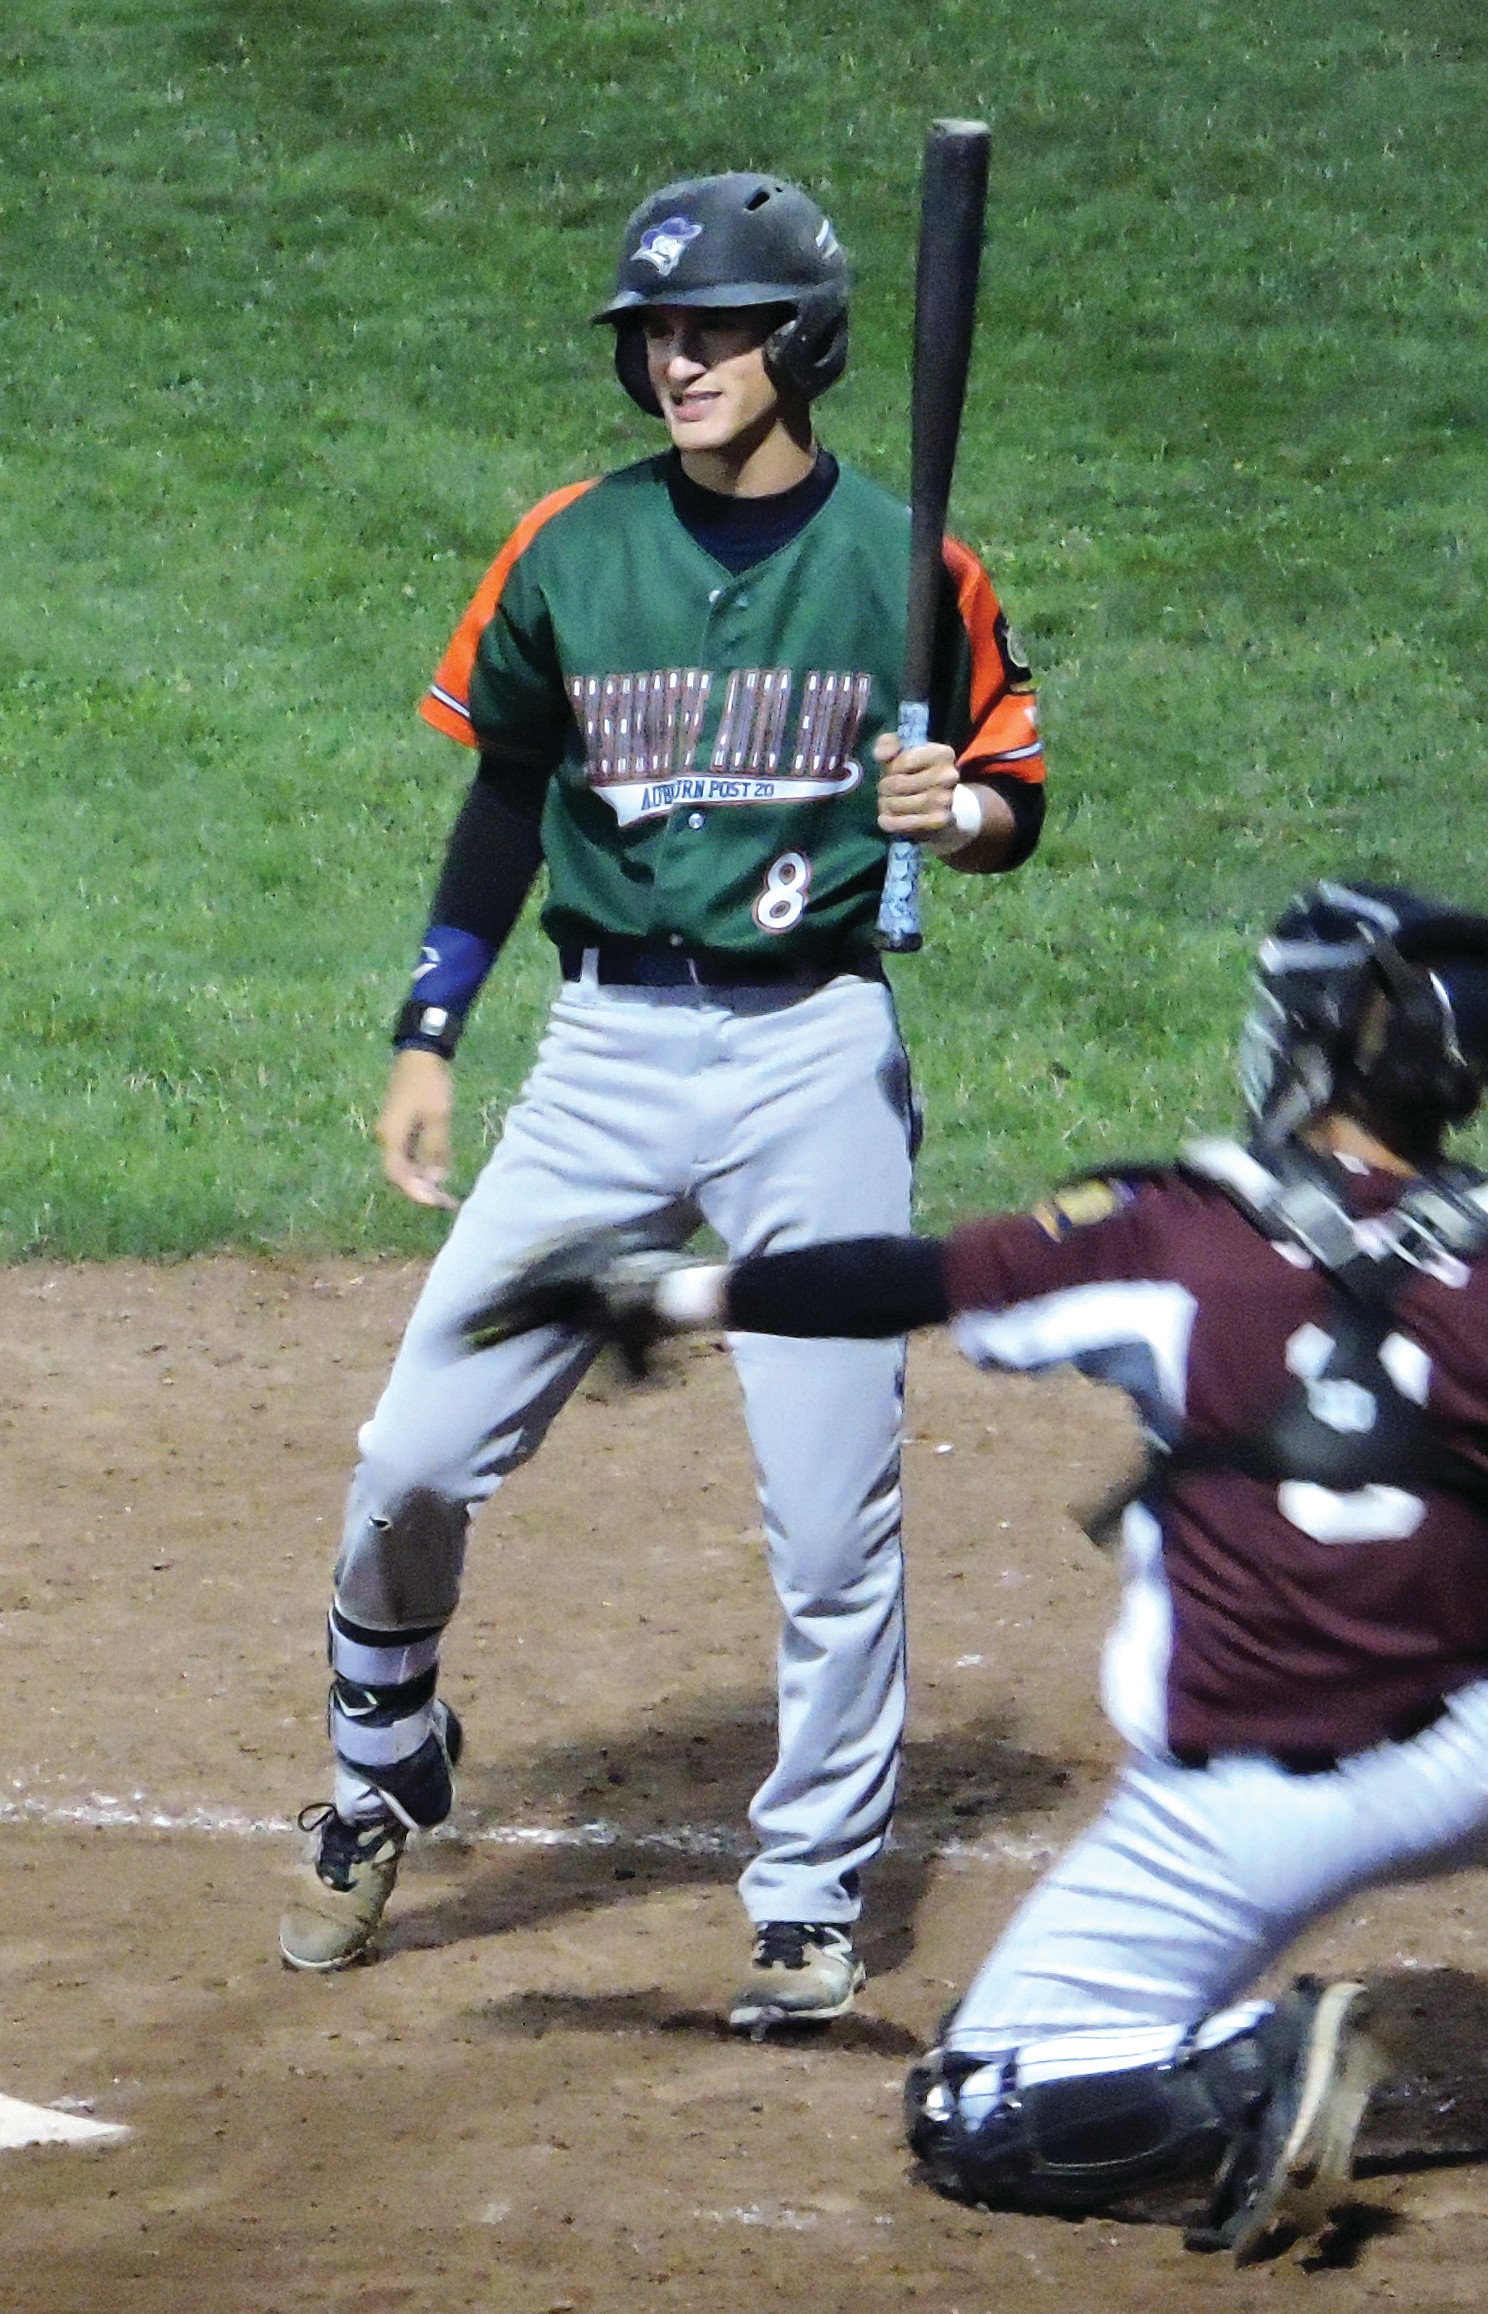 LEGION SEMIS: Mitch Carvalho reacts after taking a pitch at the plate.